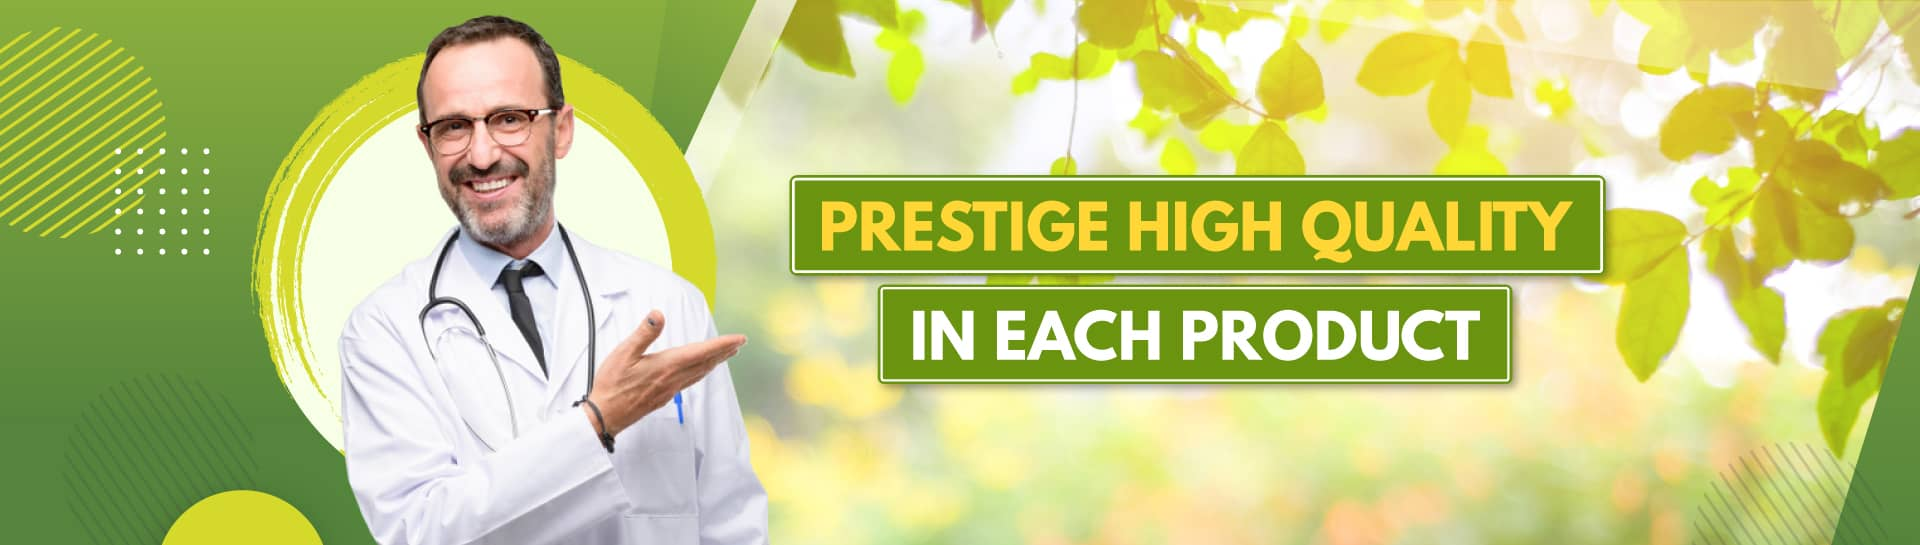 Prestige high quality in each product